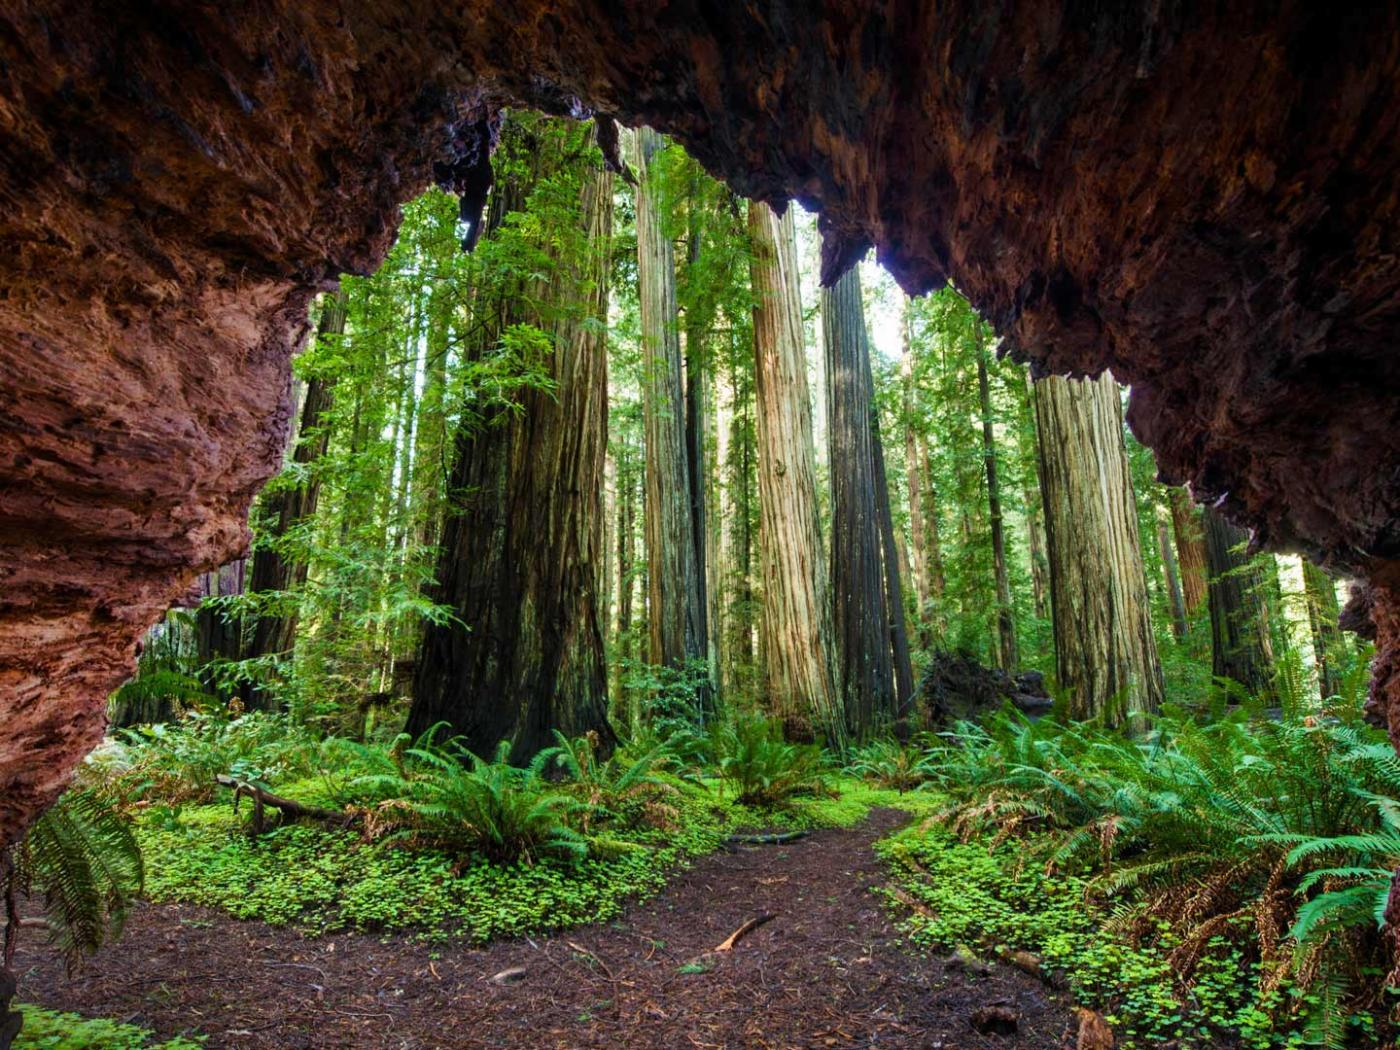 Natural Images Hd 1080p Download With Redwood Trees At